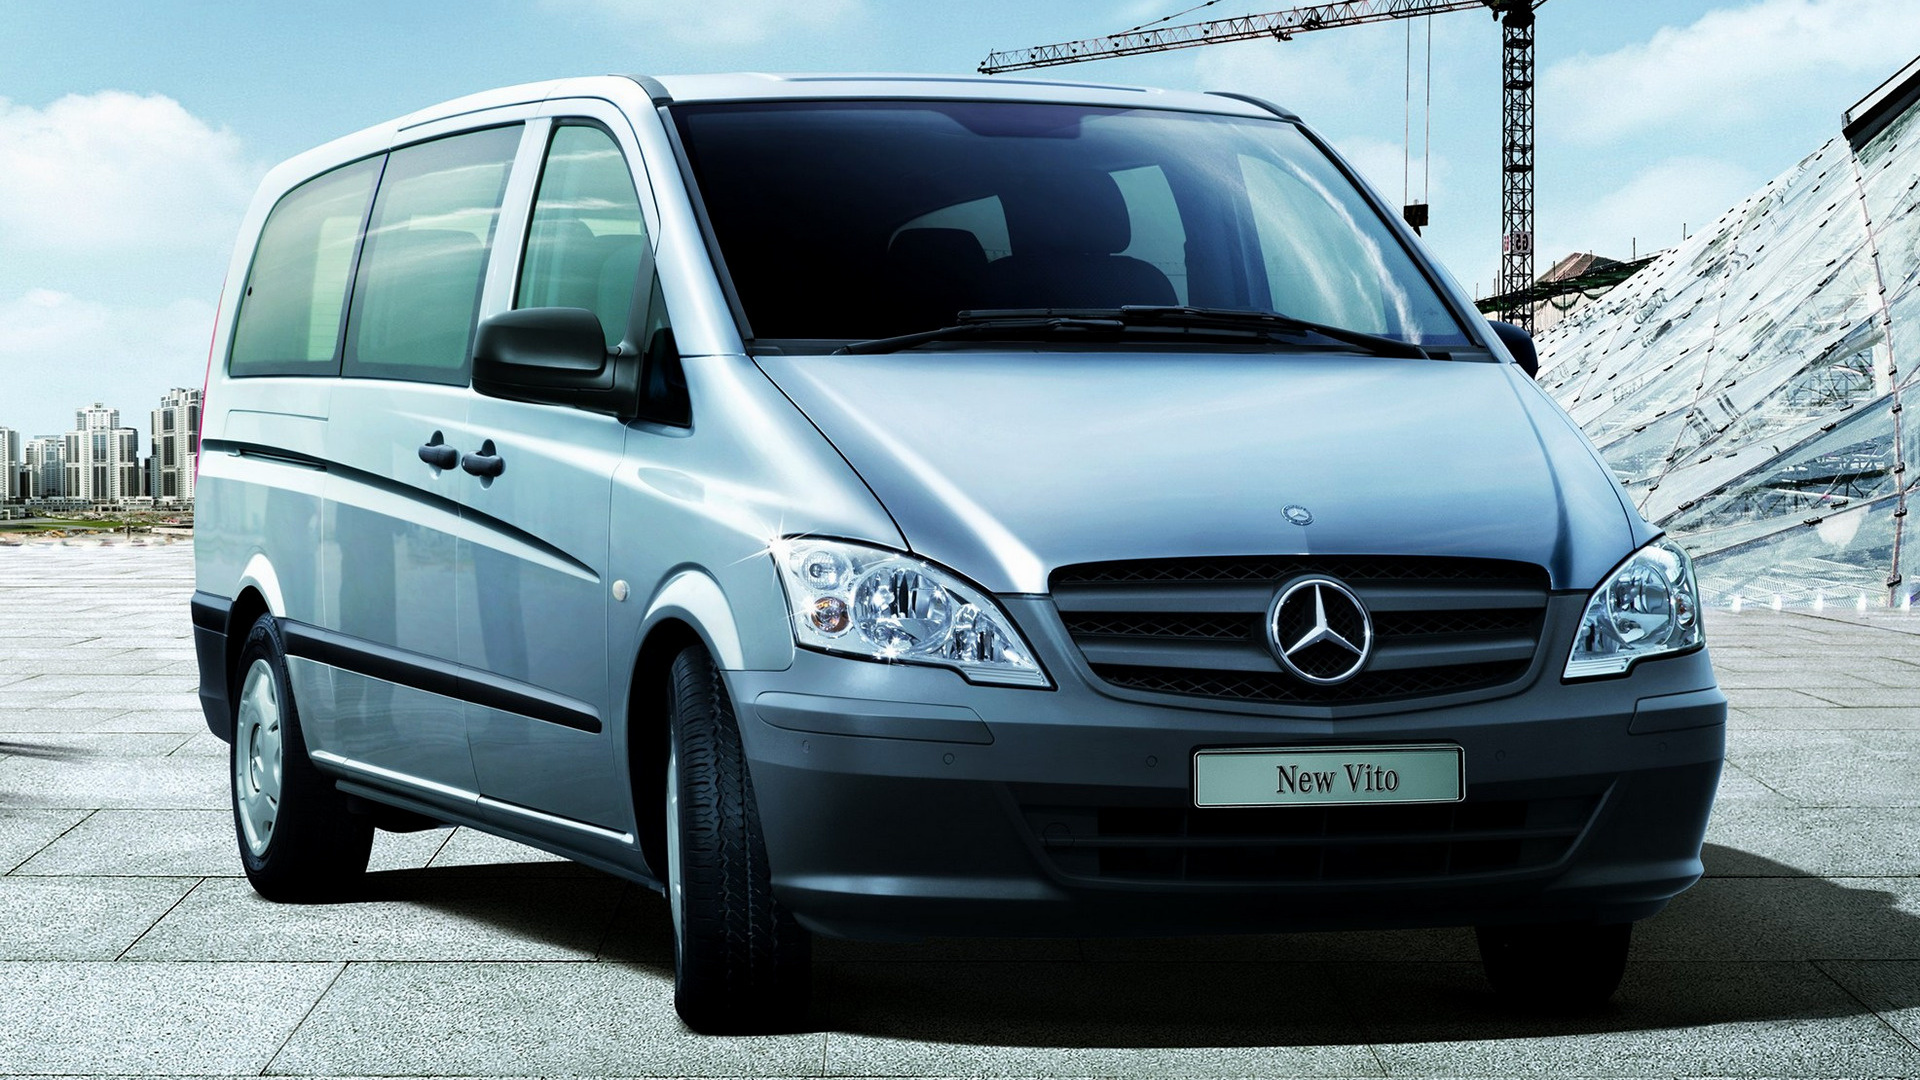 2010 Mercedes-Benz Vito ExtraLong (CN) - Wallpapers and ...